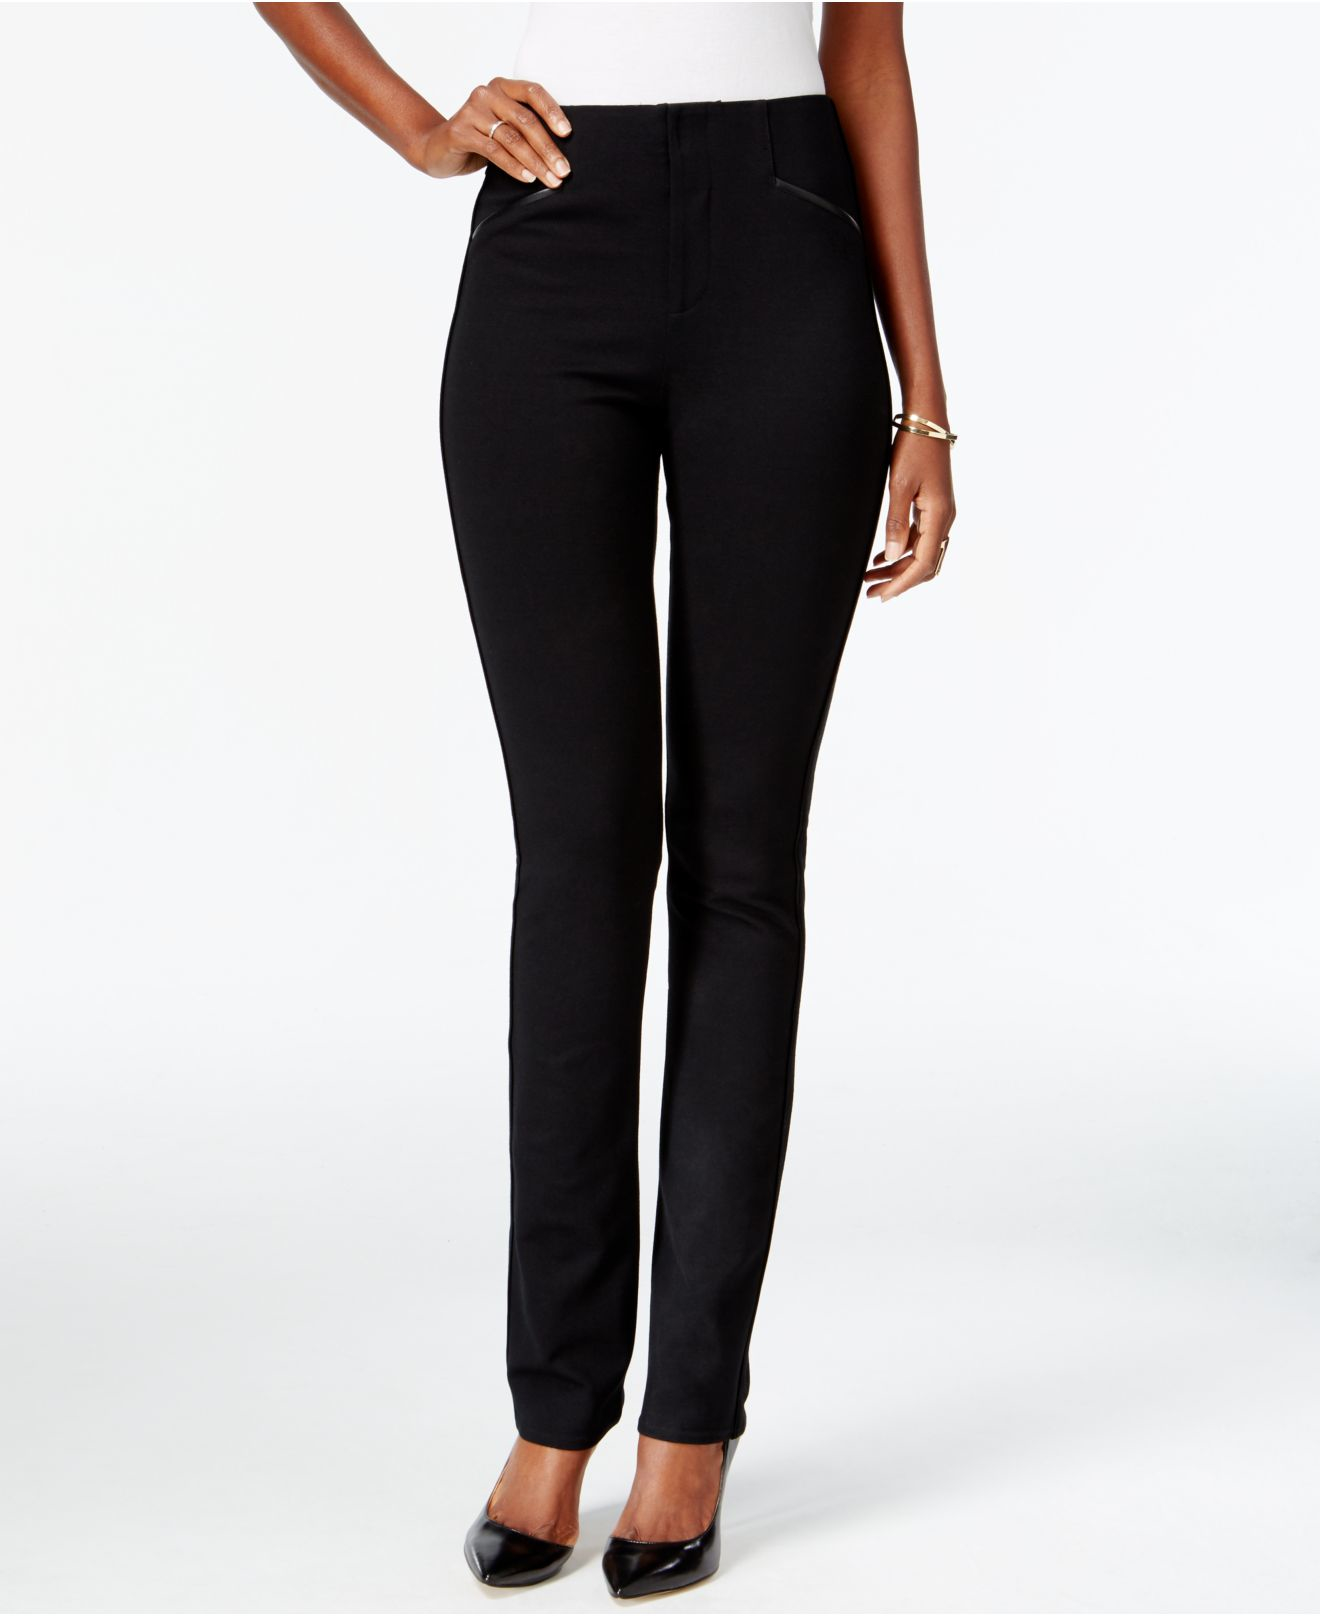 38e147eac8951 Lyst - INC International Concepts Curvy-fit Straight-leg Pants in Black